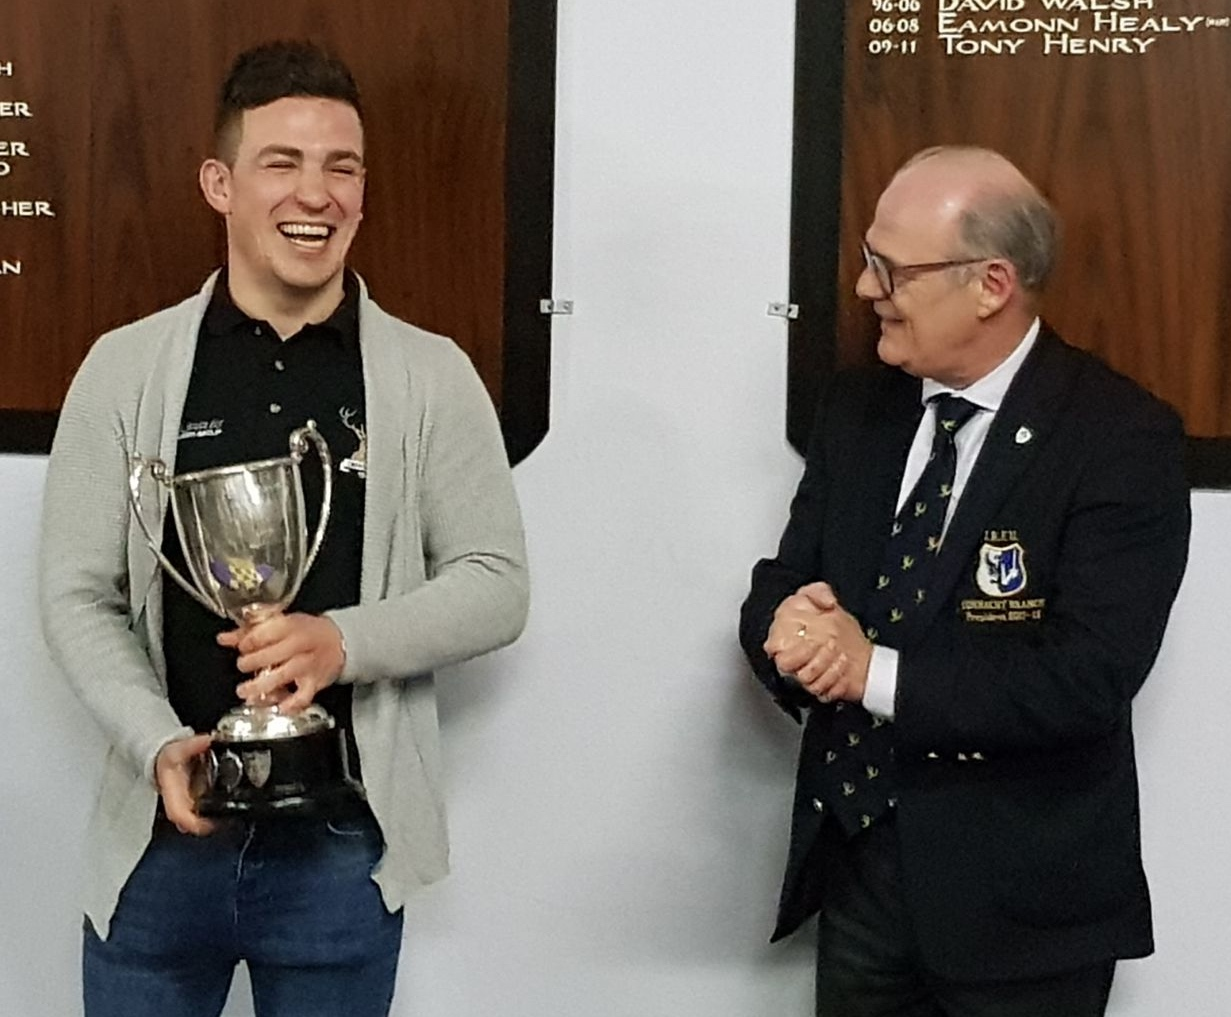 Creggs Captain Tom Callaghan having just received the Connacht J1B League Cup from Brian O'Beirn, President of the Connacht Branch of the IRFU.